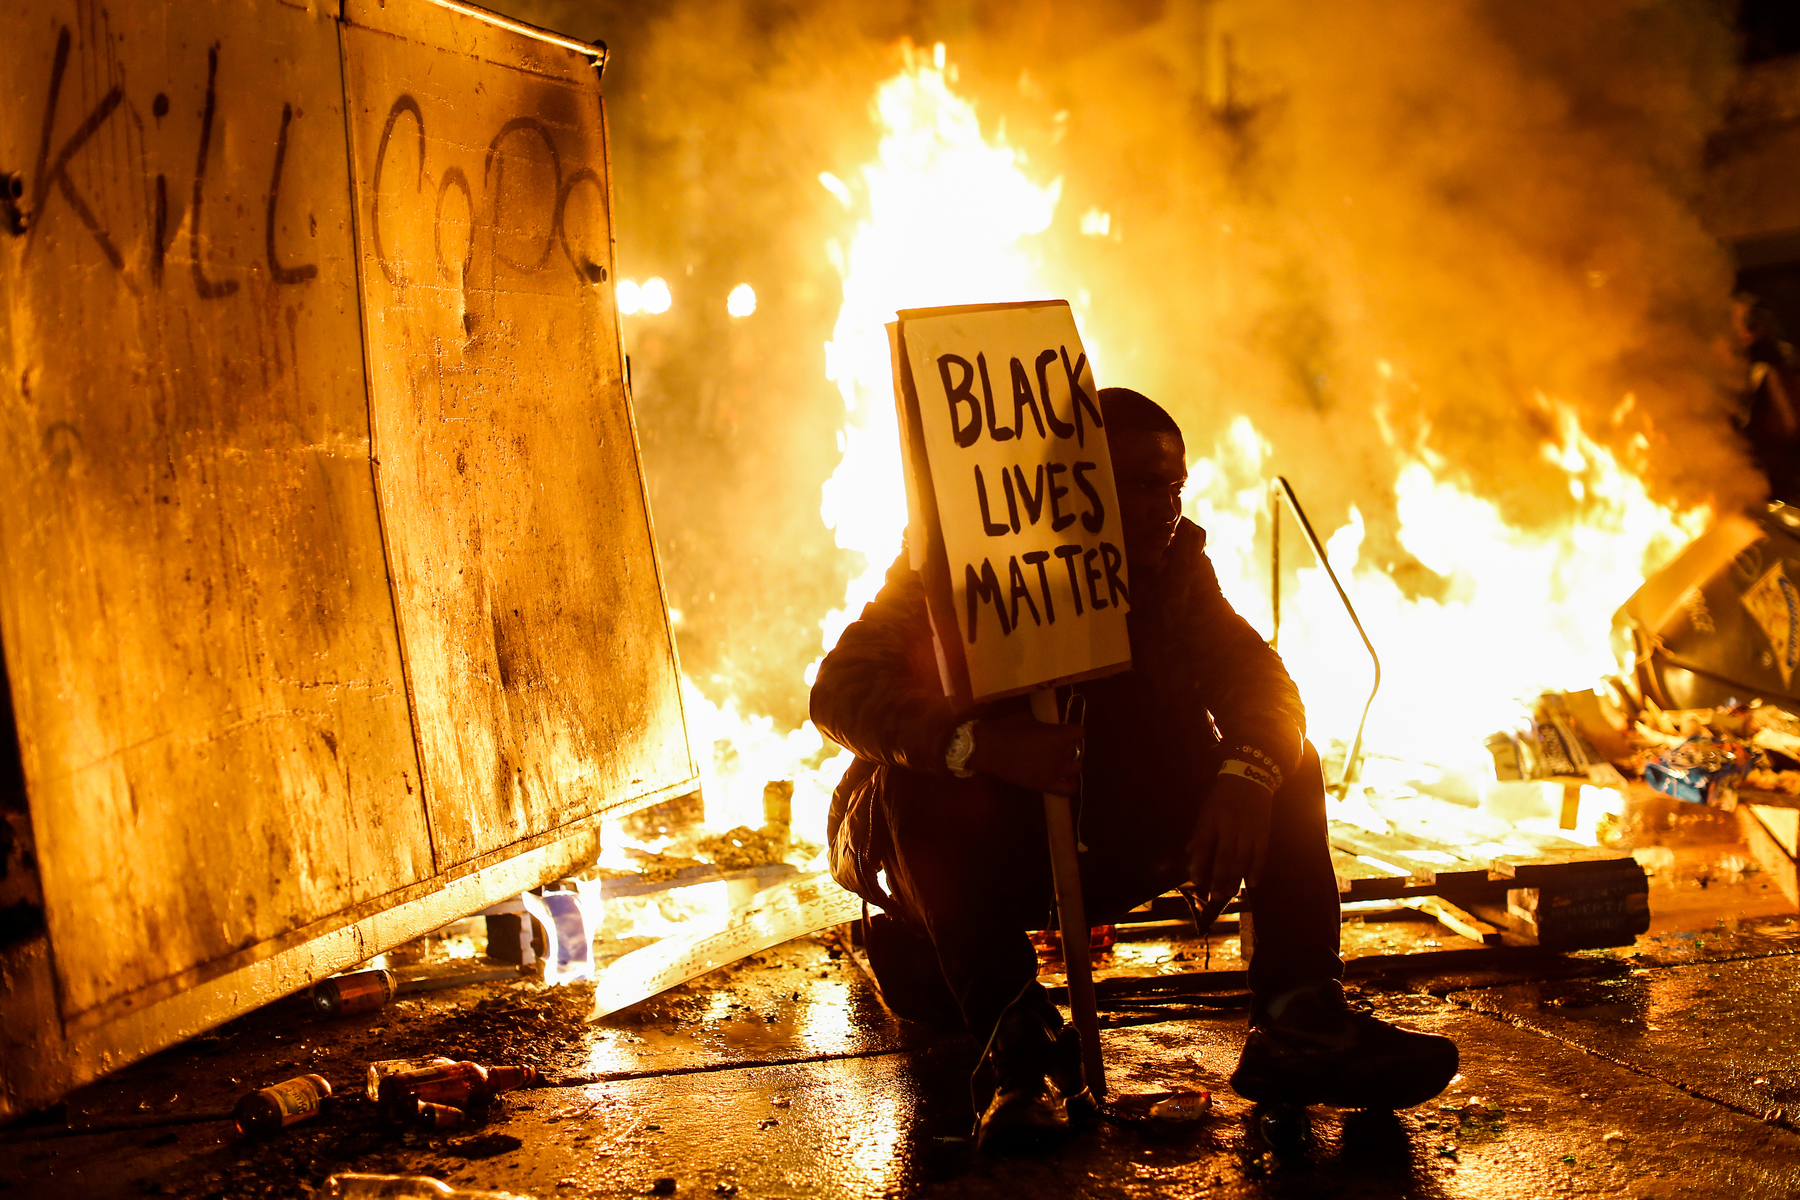 A demonstrator sits in front of a street fire during a demonstration following the grand jury decision in the Ferguson, Missouri shooting of Michael Brown, in Oakland, California November 25, 2014. The grand jury decided on Monday not to indict a white police officer over the fatal August shooting of an unarmed black teenager.